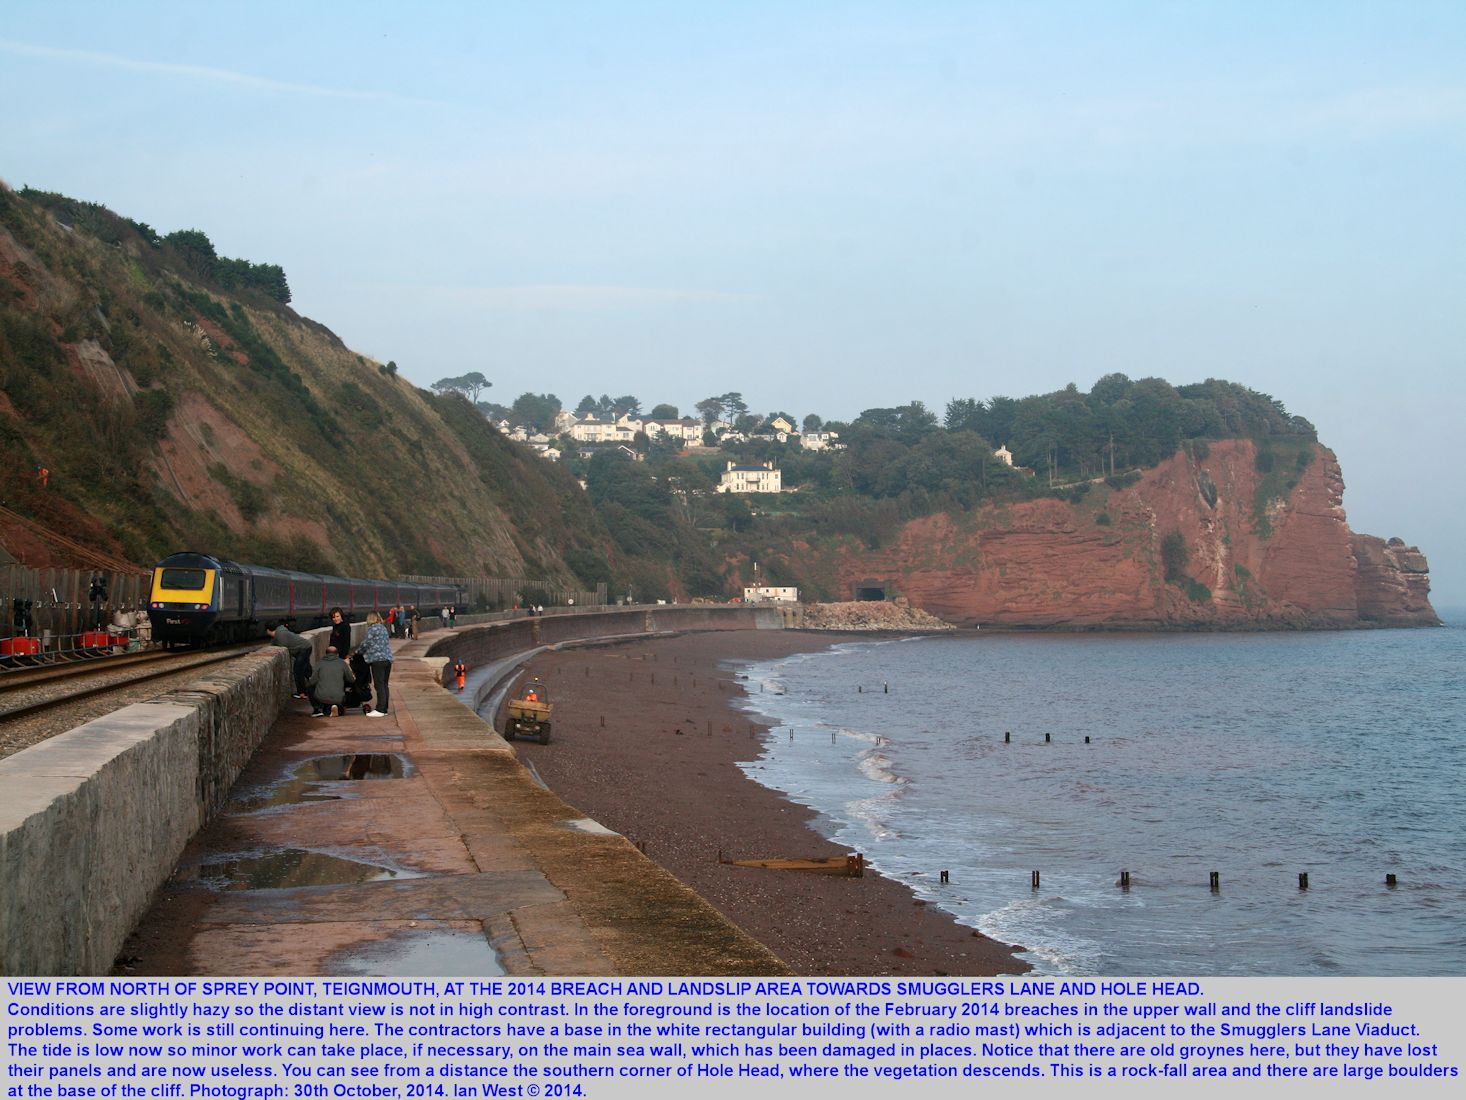 A view northward from the landslip area of 2014, north of Sprey Point, Teignmouth, towards Smugglers Lane and Hole Head Dawlish, Devon